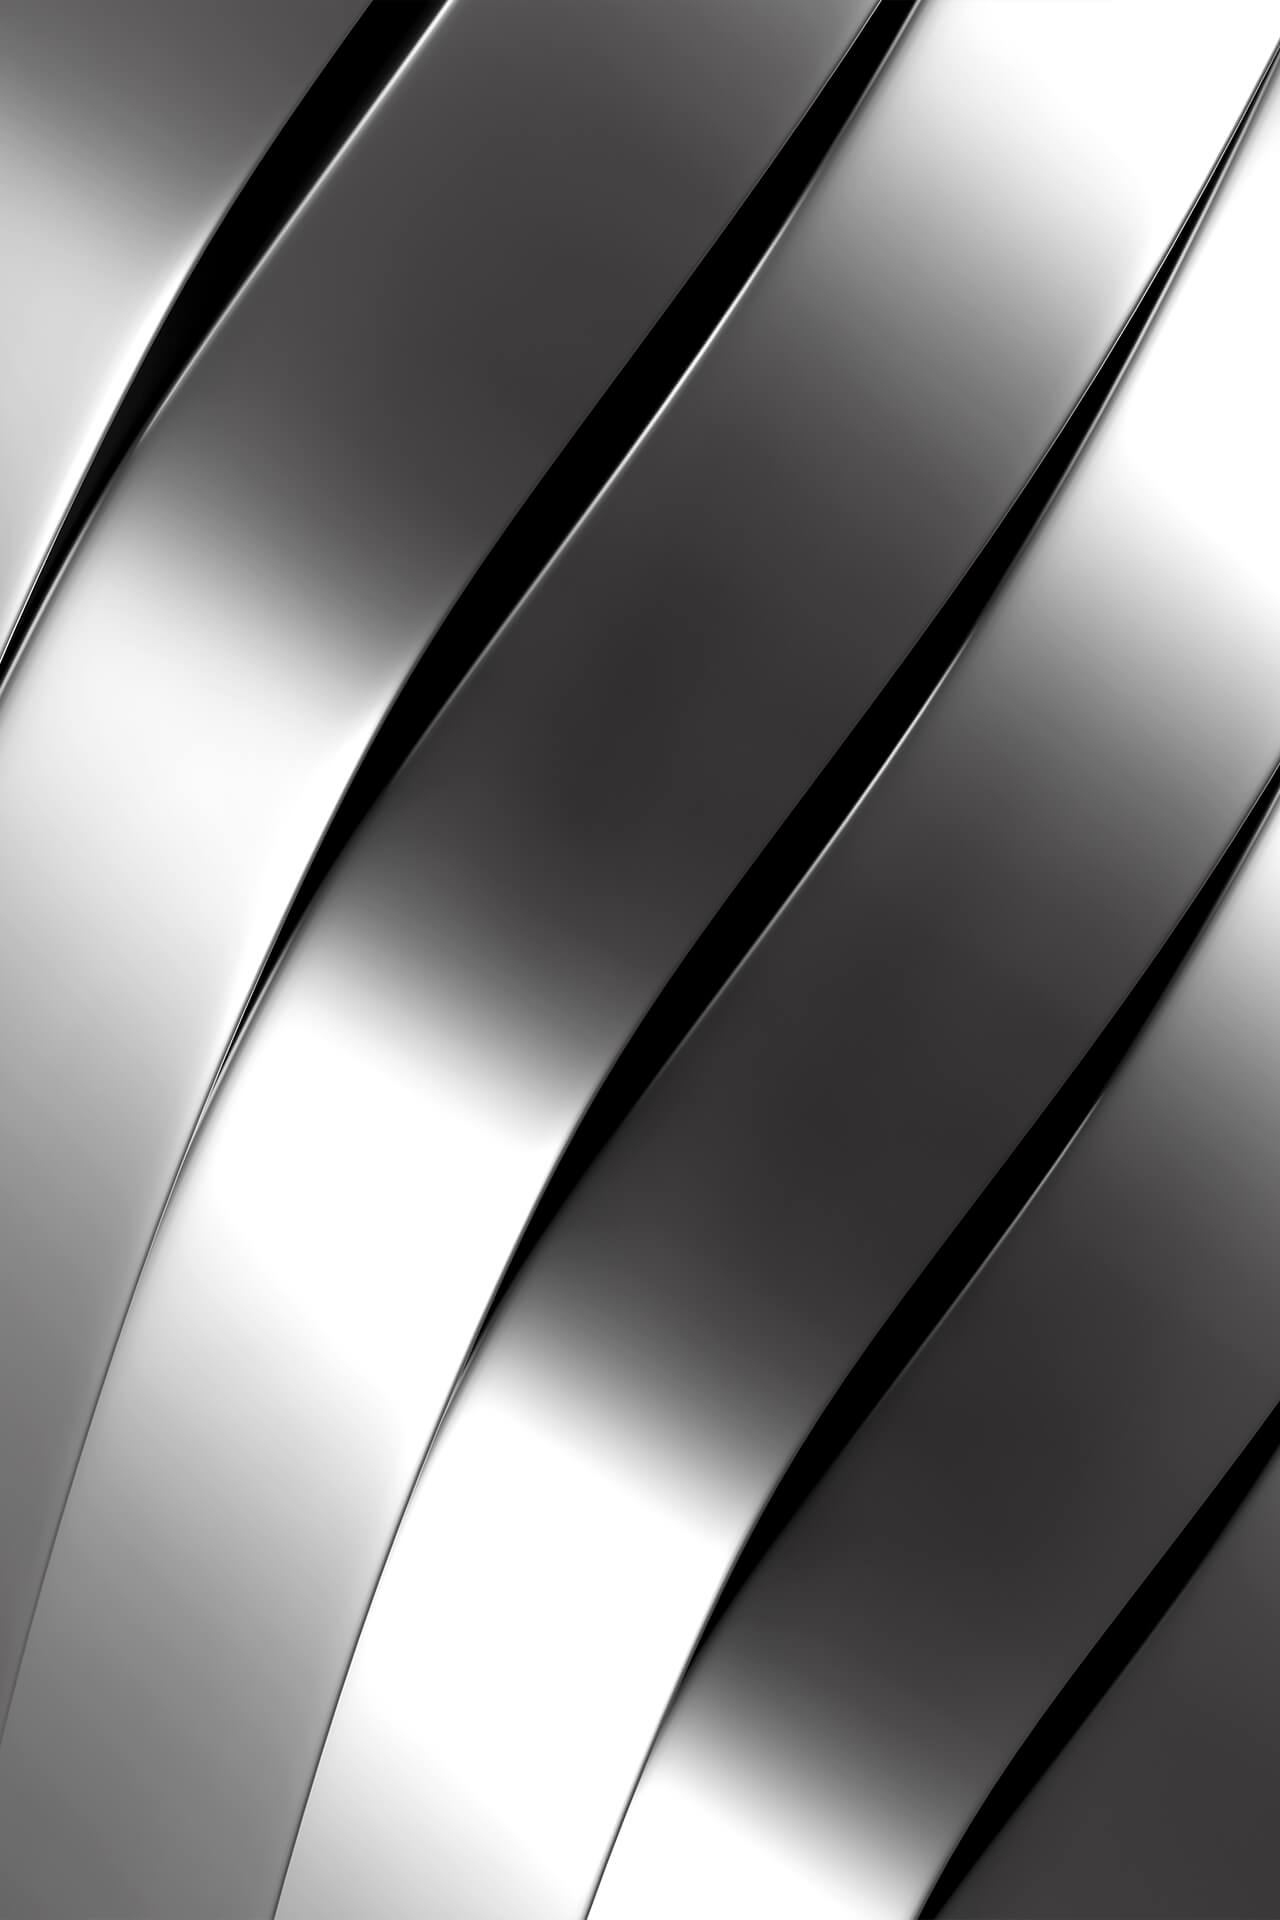 High-Quality Stainless Steel Production